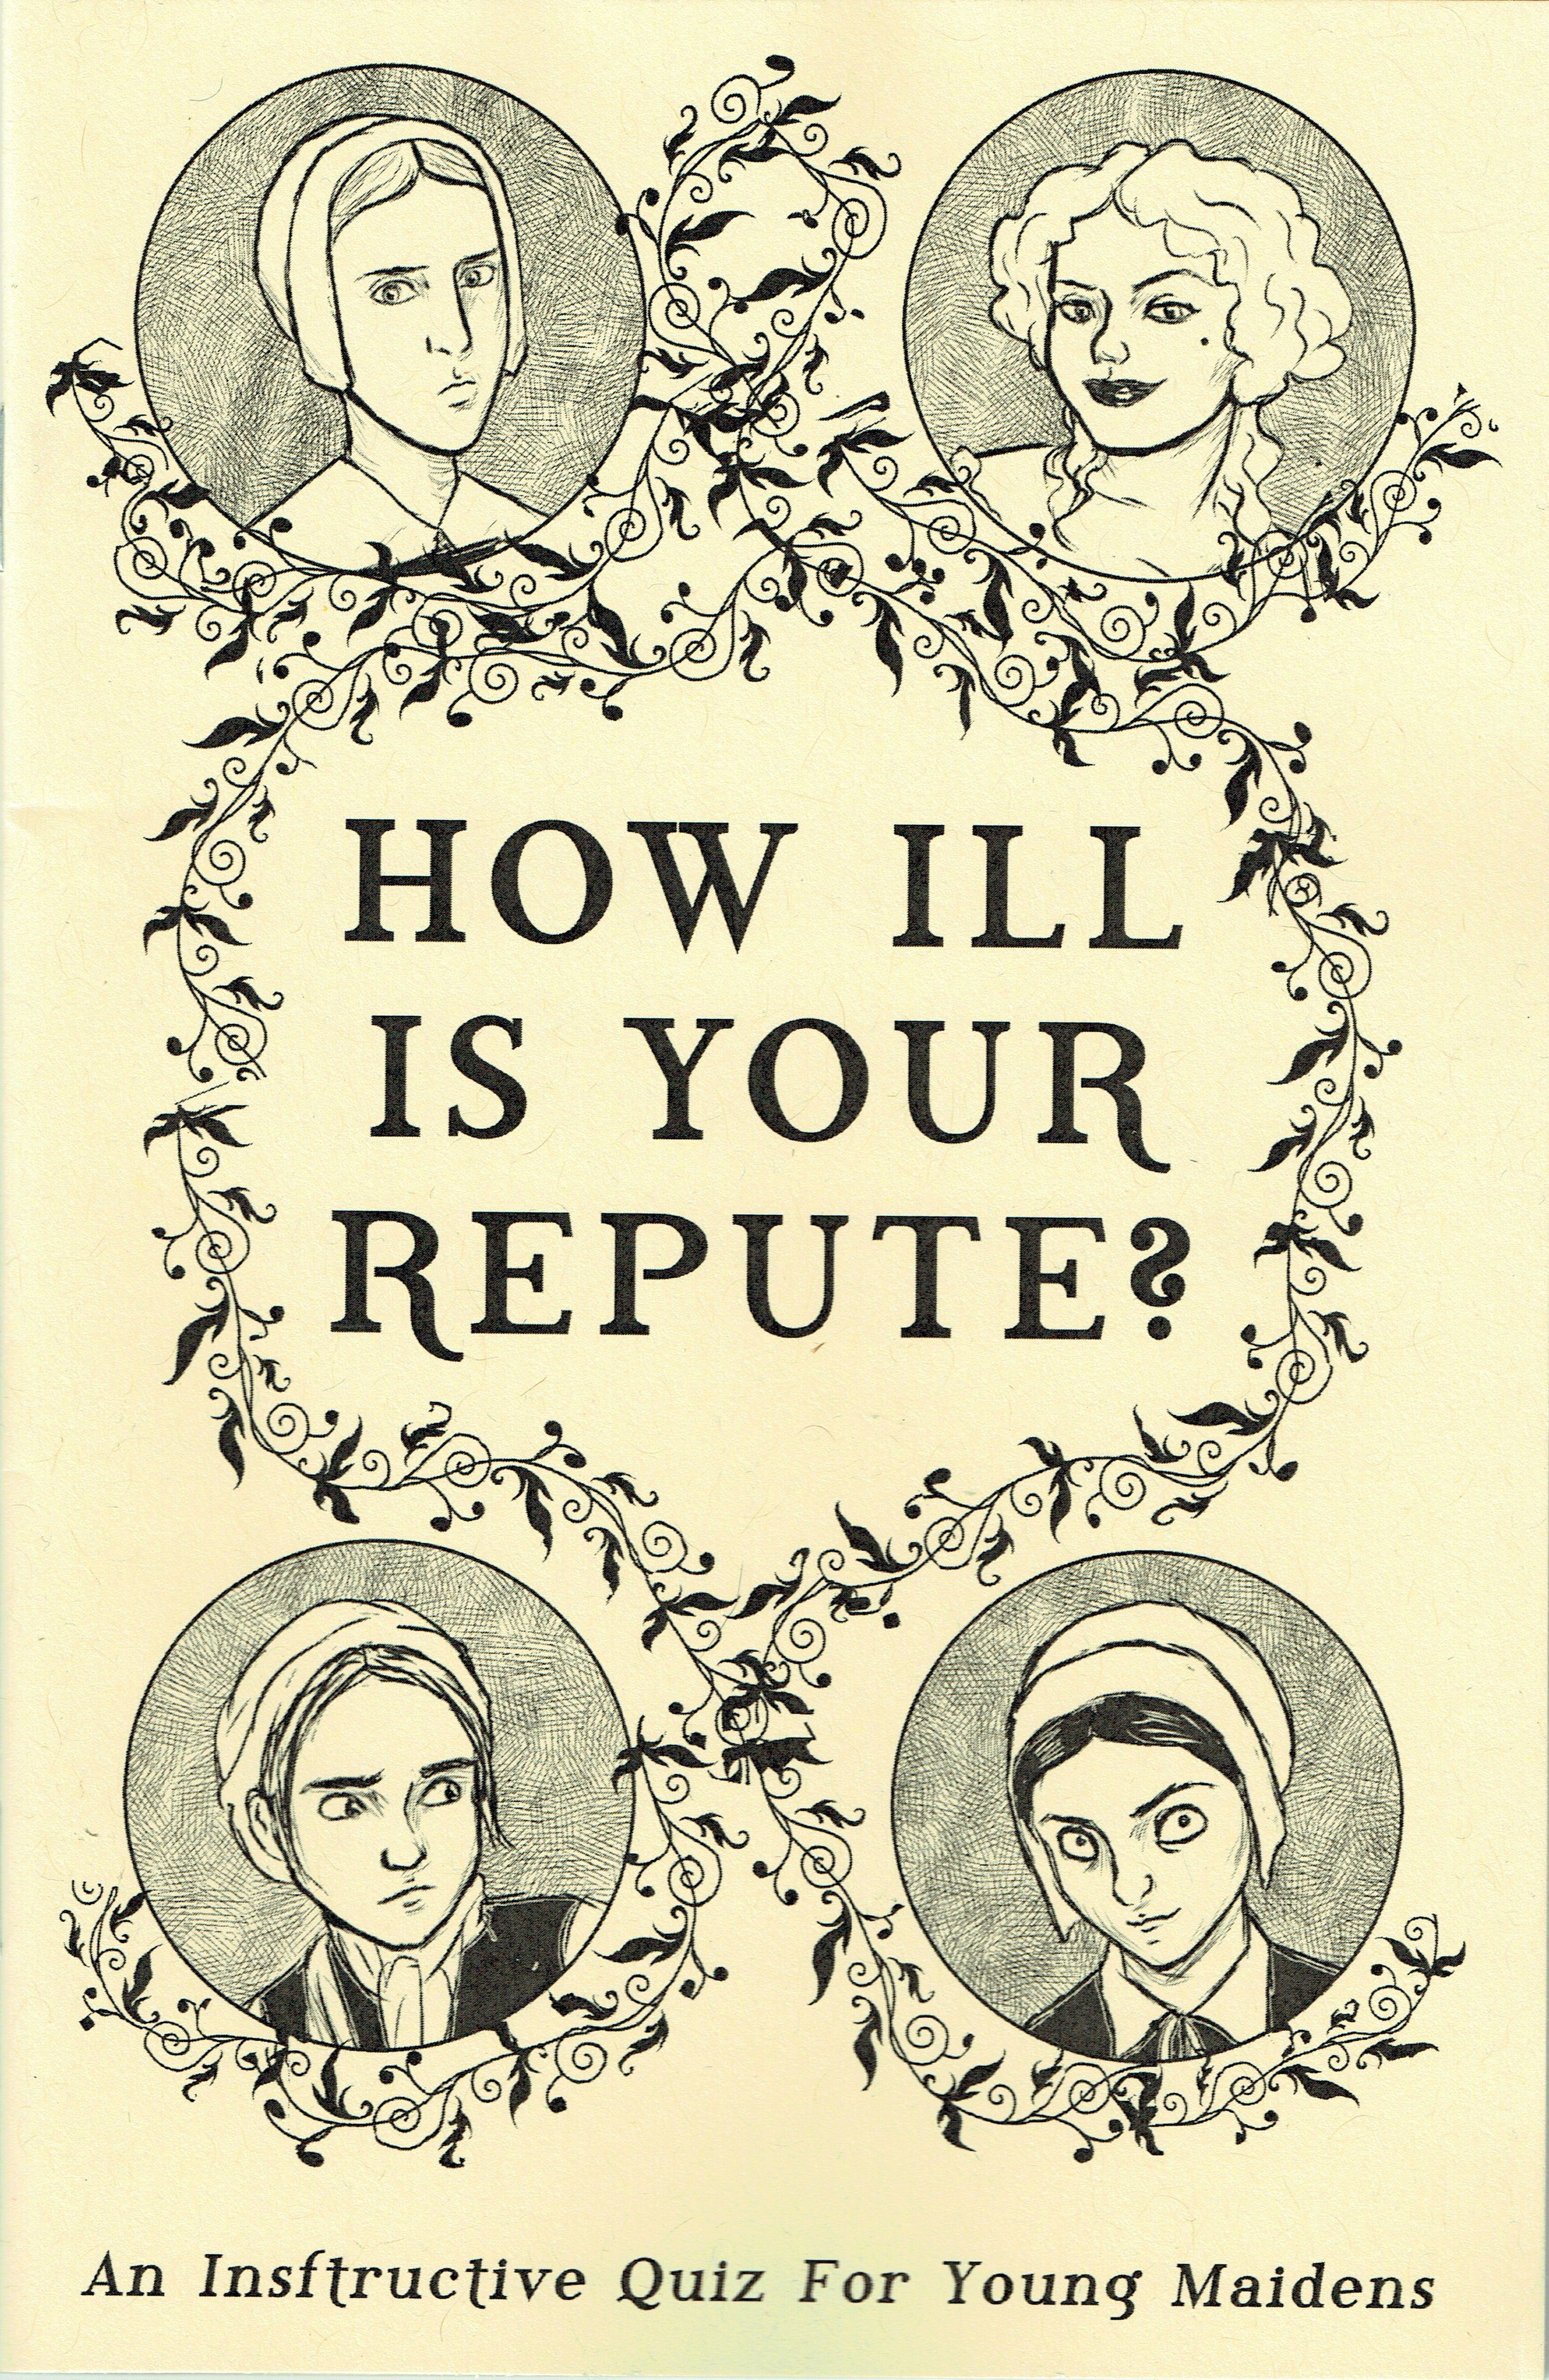 How Ill Is Your Repute? from Kitty Curran & Larissa Zageris.